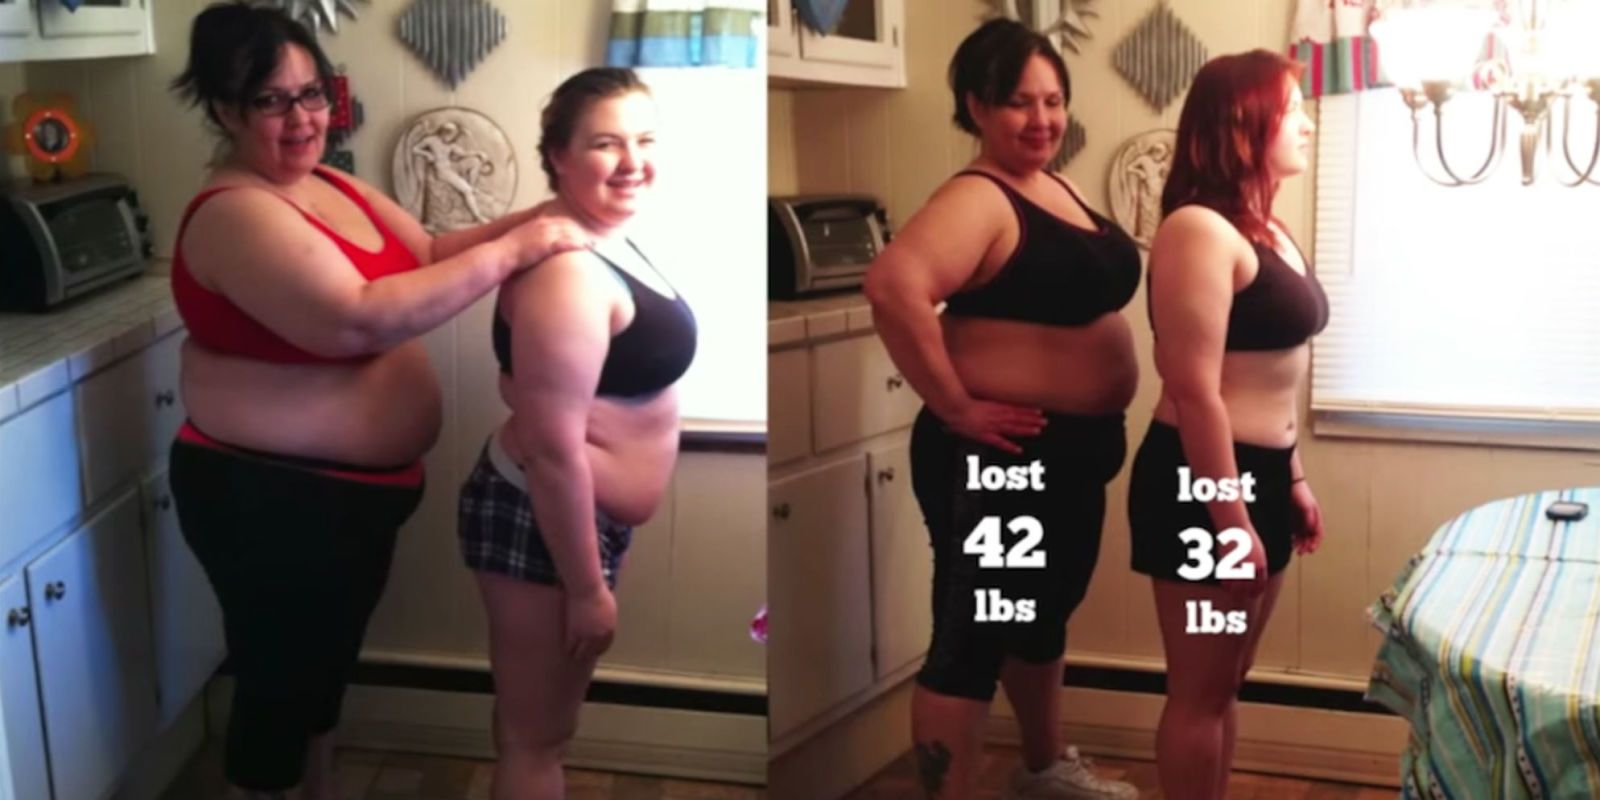 This Adorable Mother-Daughter Duo Is Going Viral for Their Incredible Weight-Loss Journey